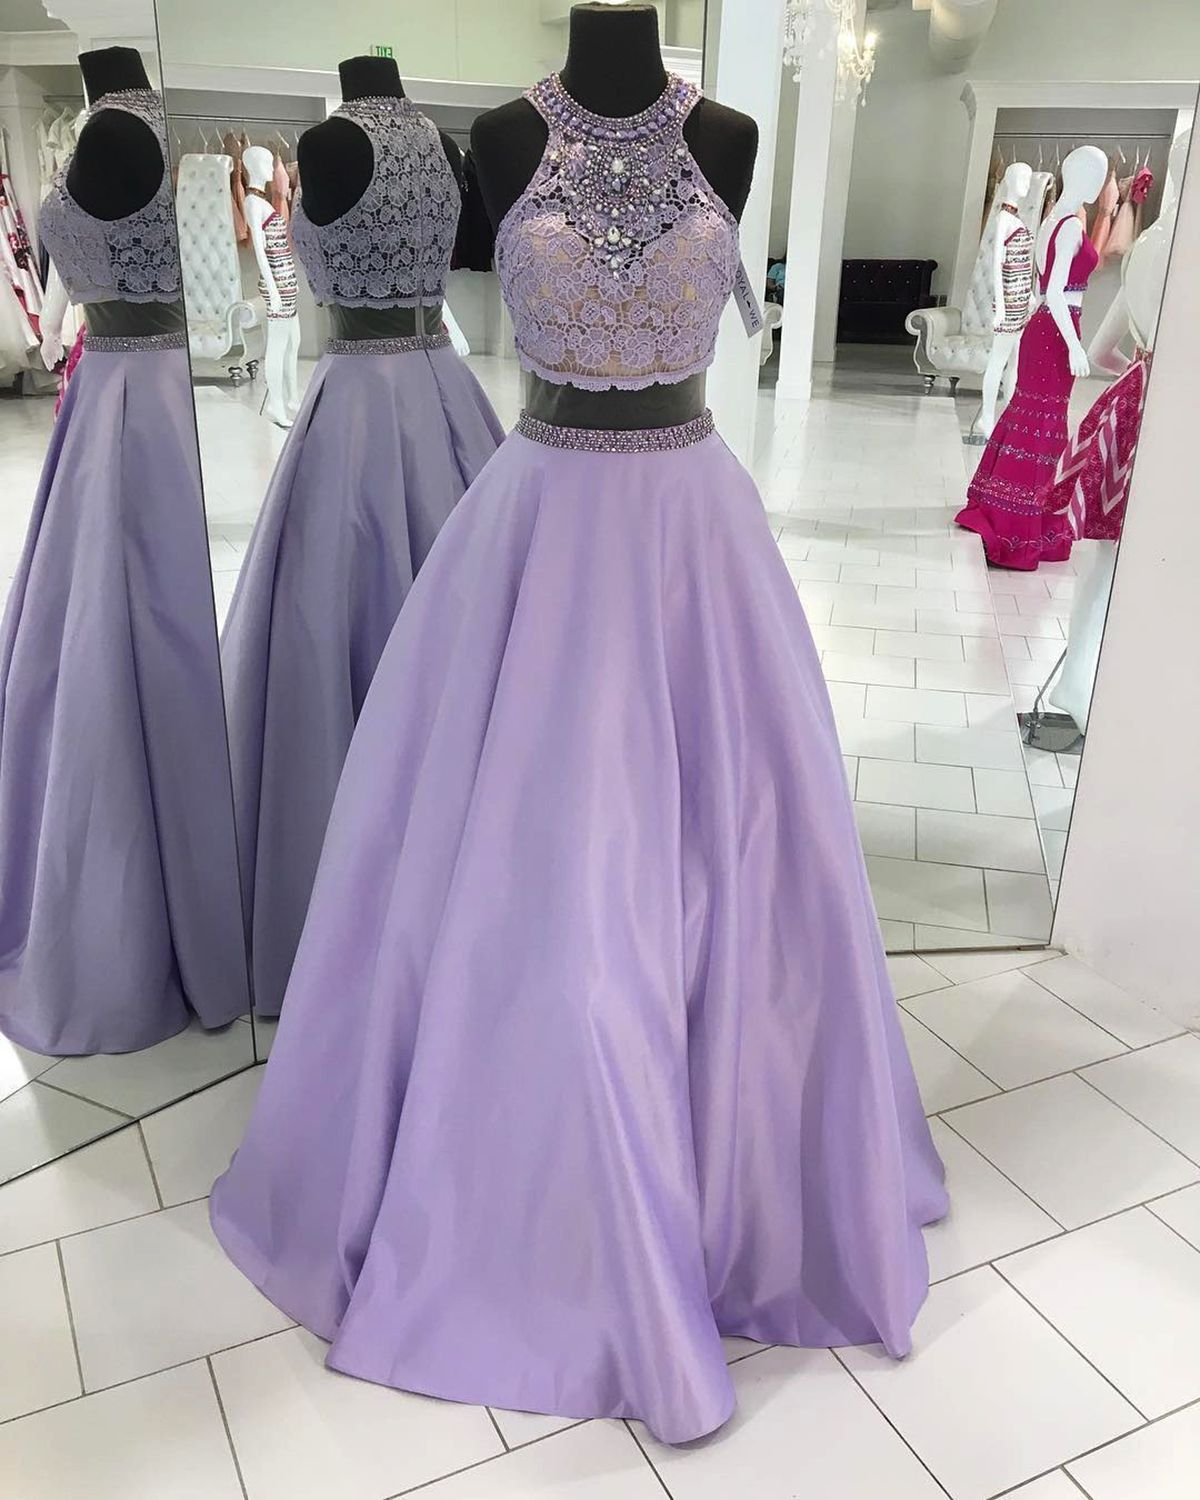 Lavender satin two pieces strapless long homecoming dress long